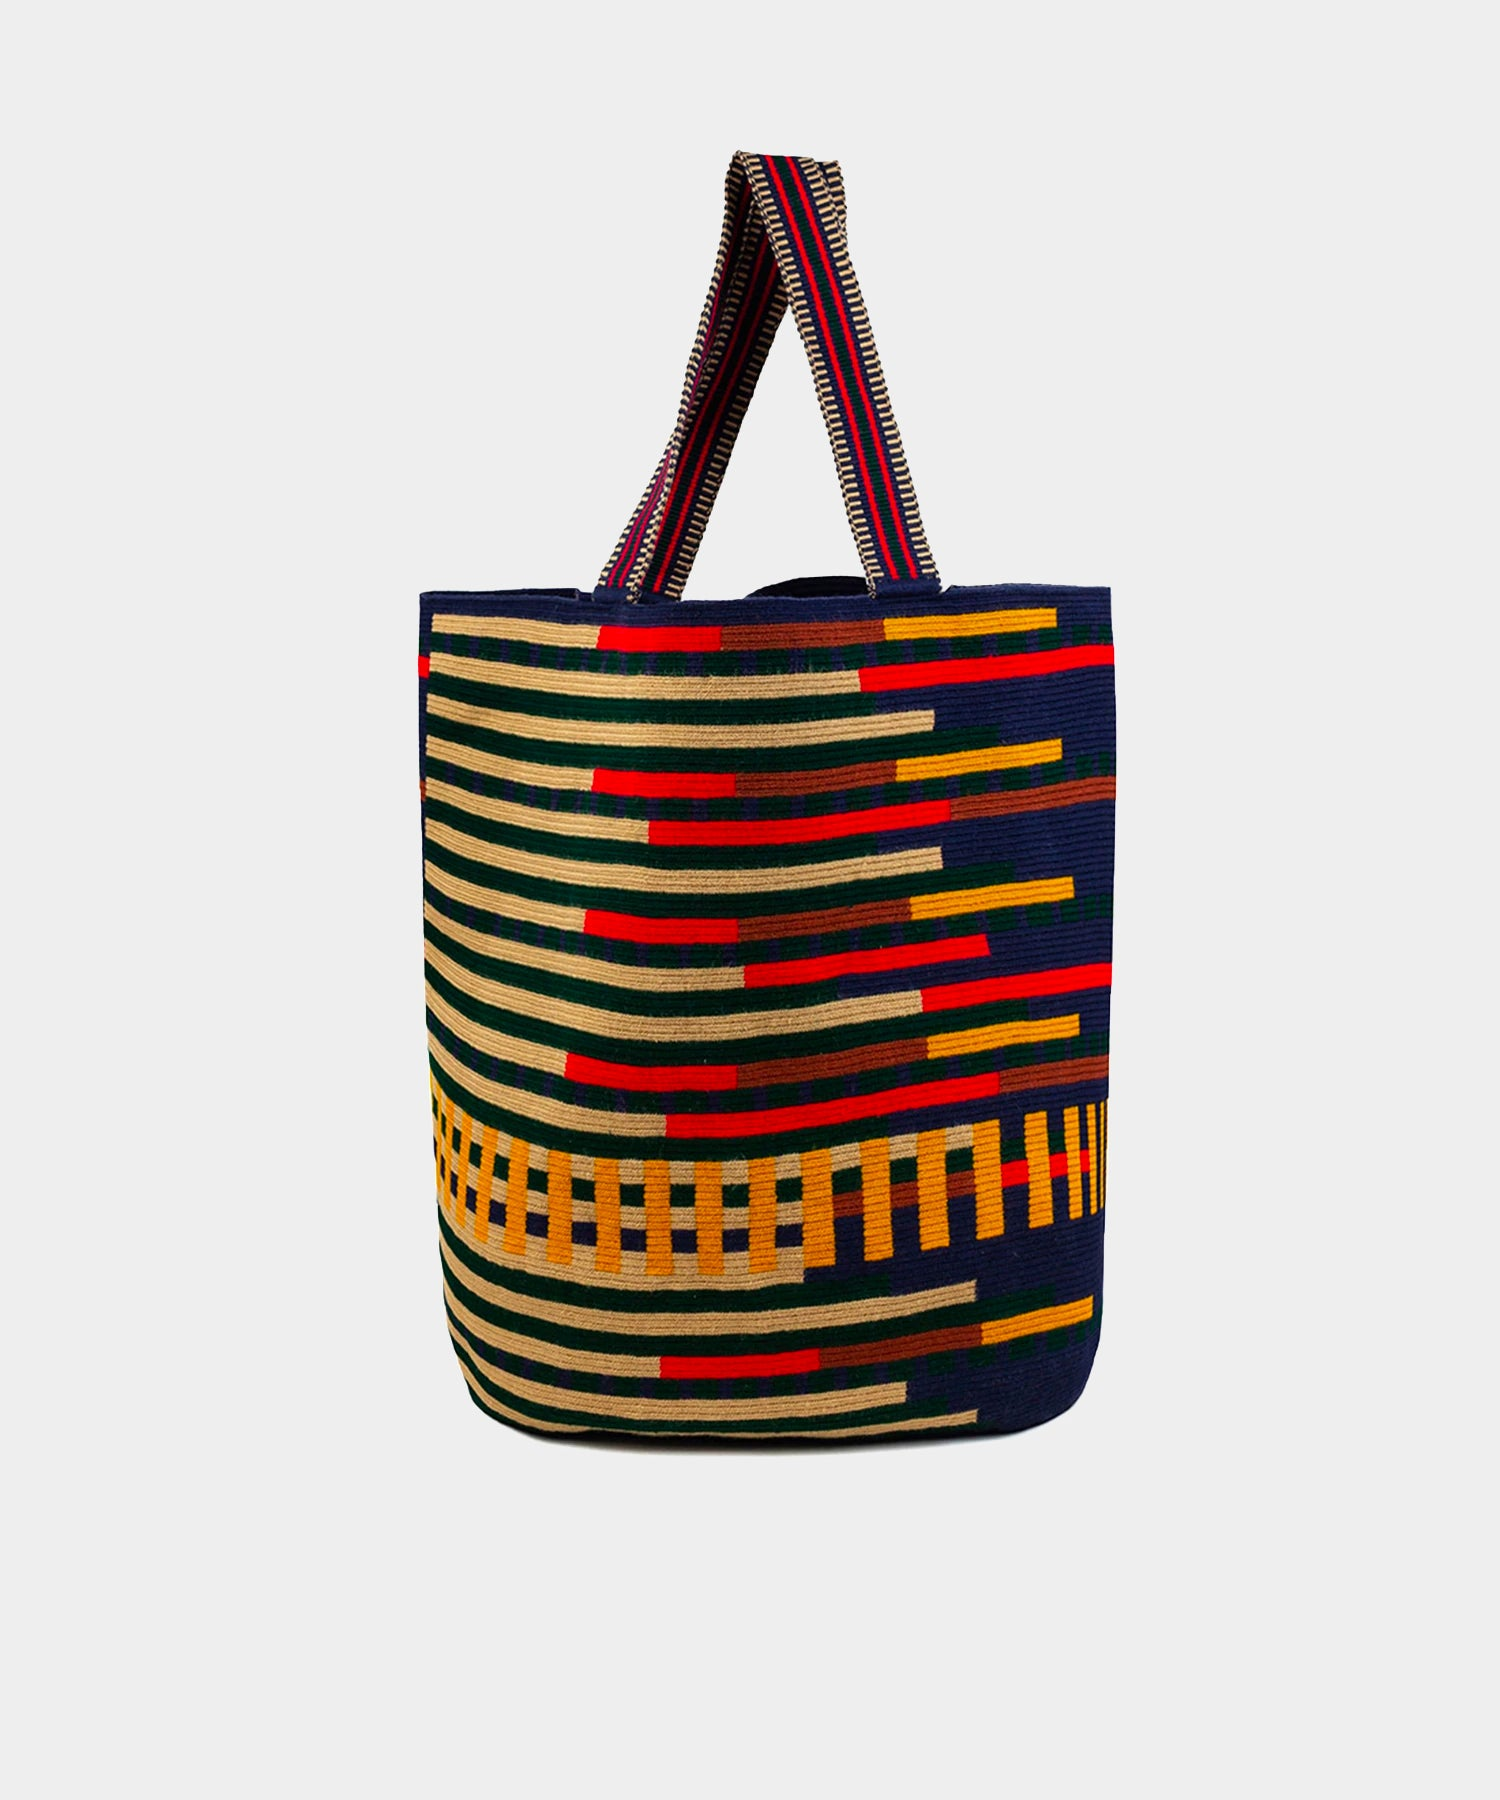 Guanábana Handmade Liam Bag in Multi Color